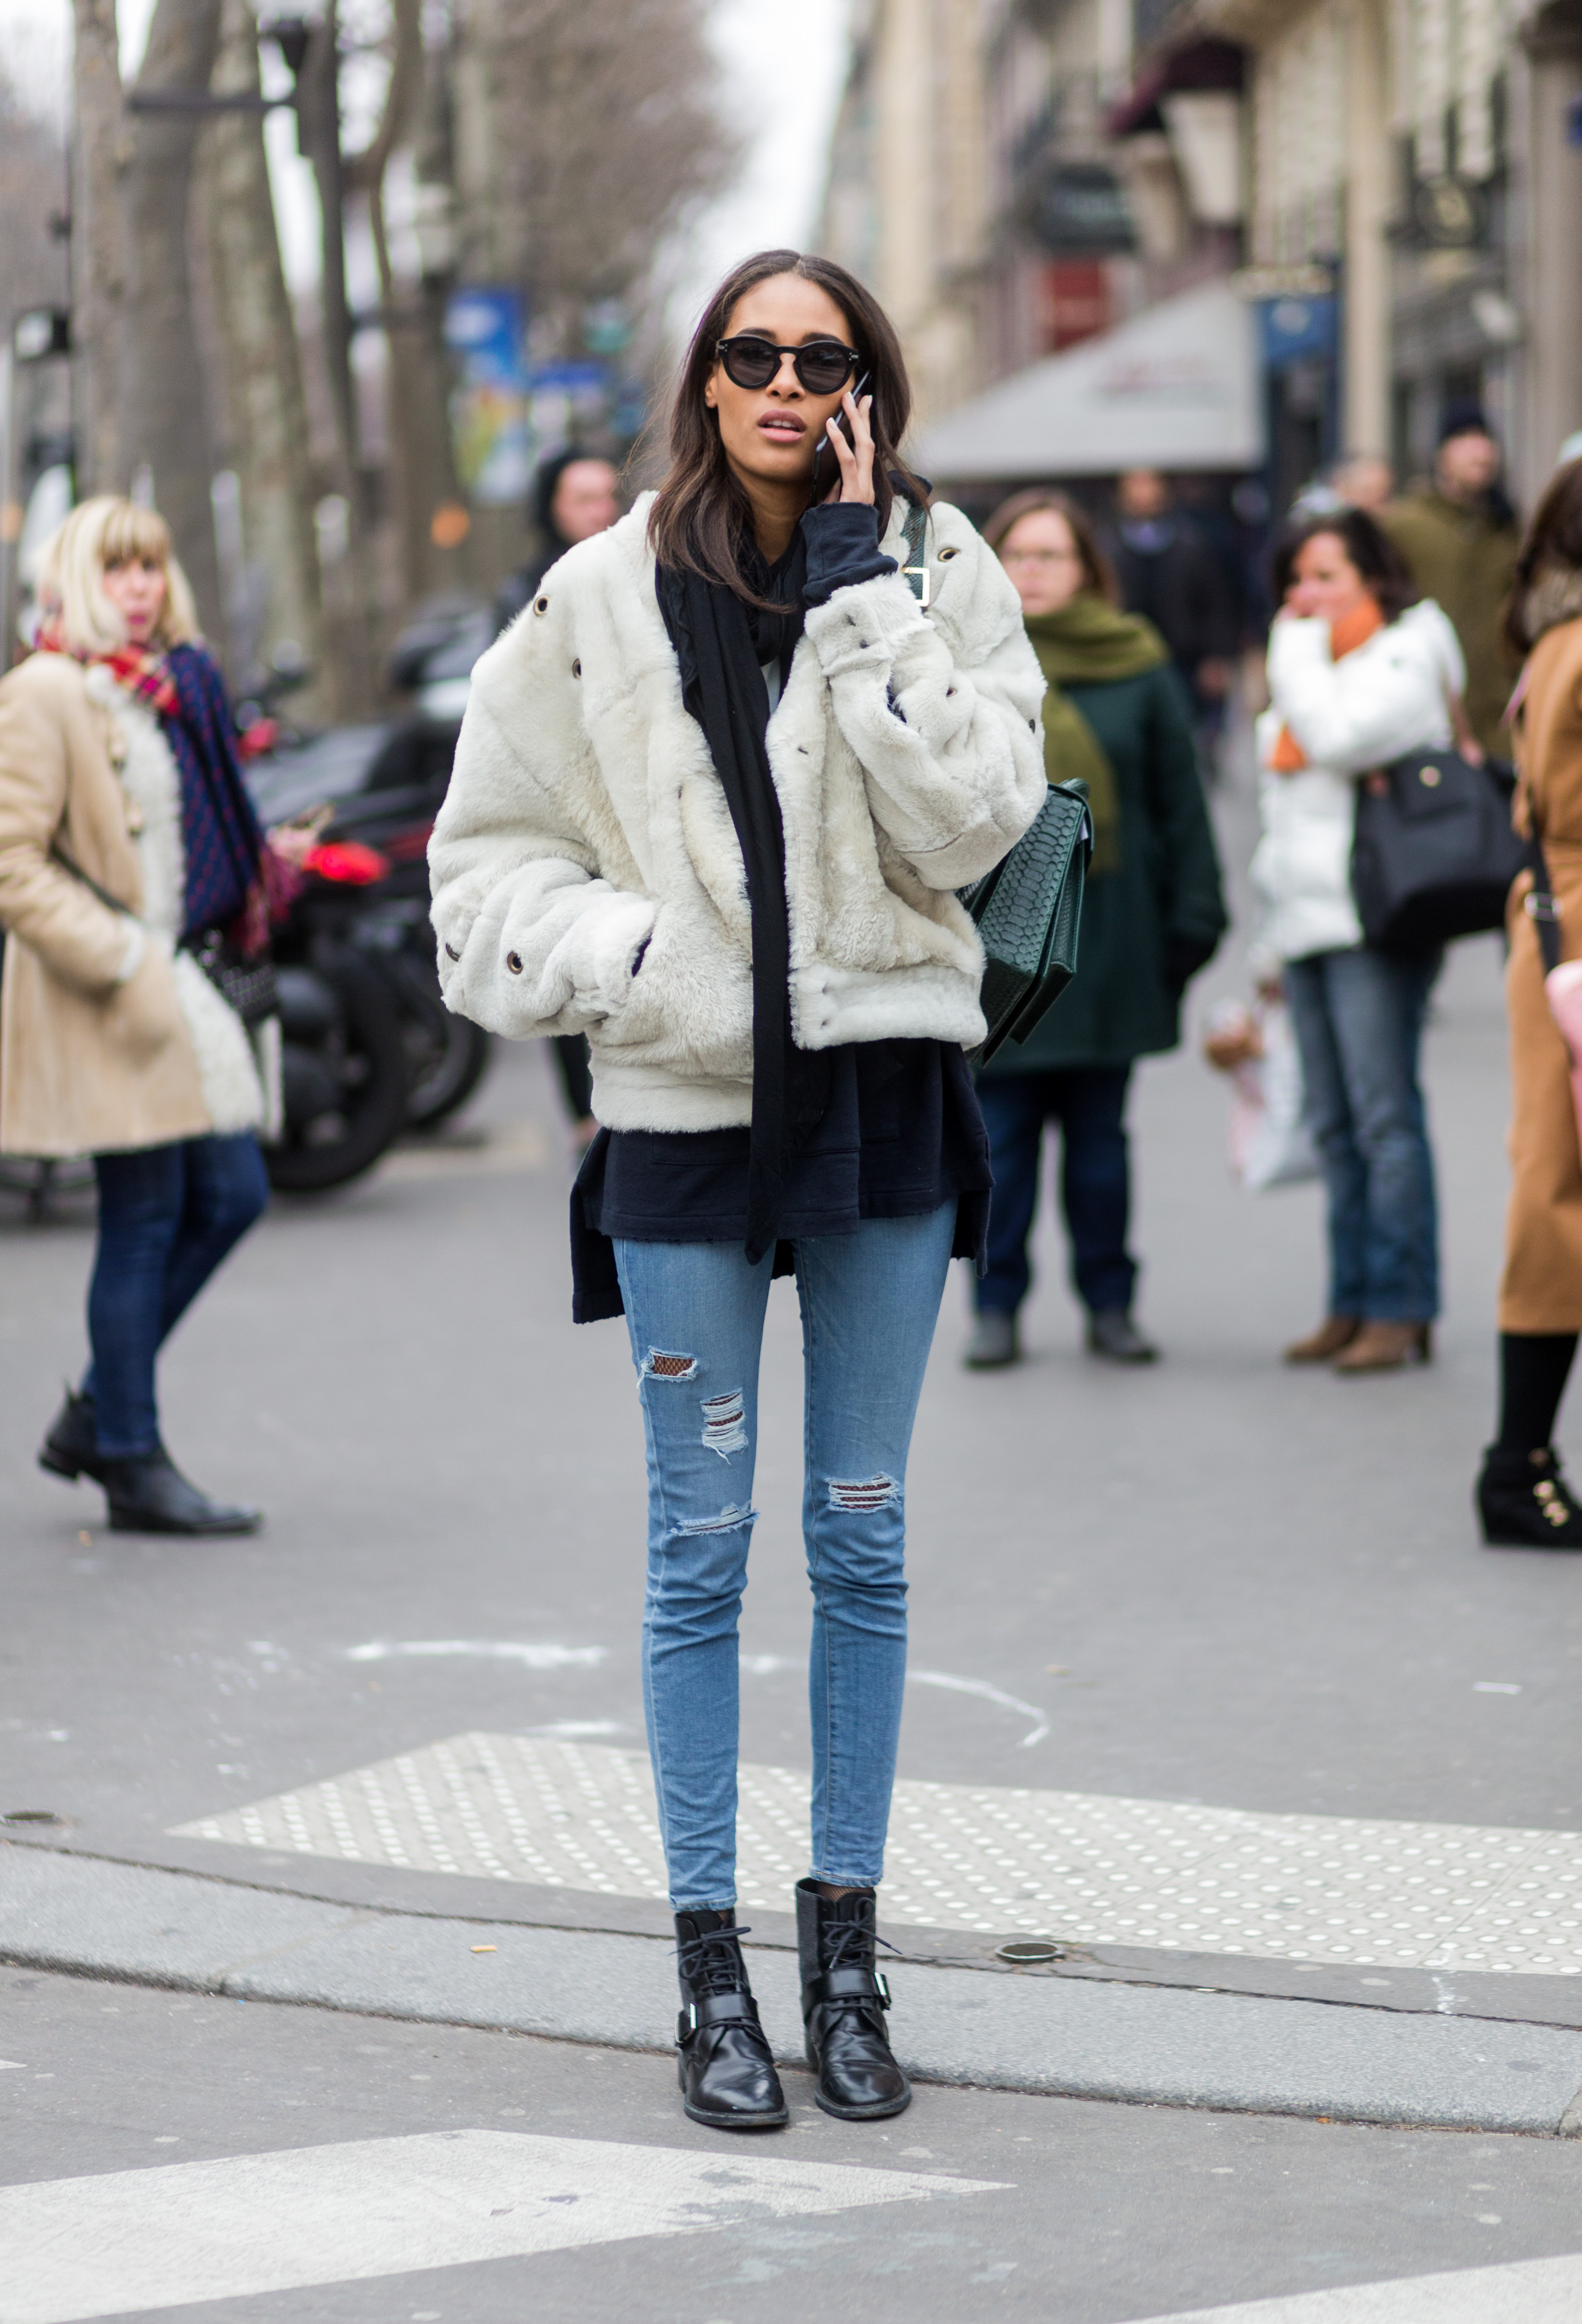 The Top Street Style Looks From Paris Couture Fashion Week ...